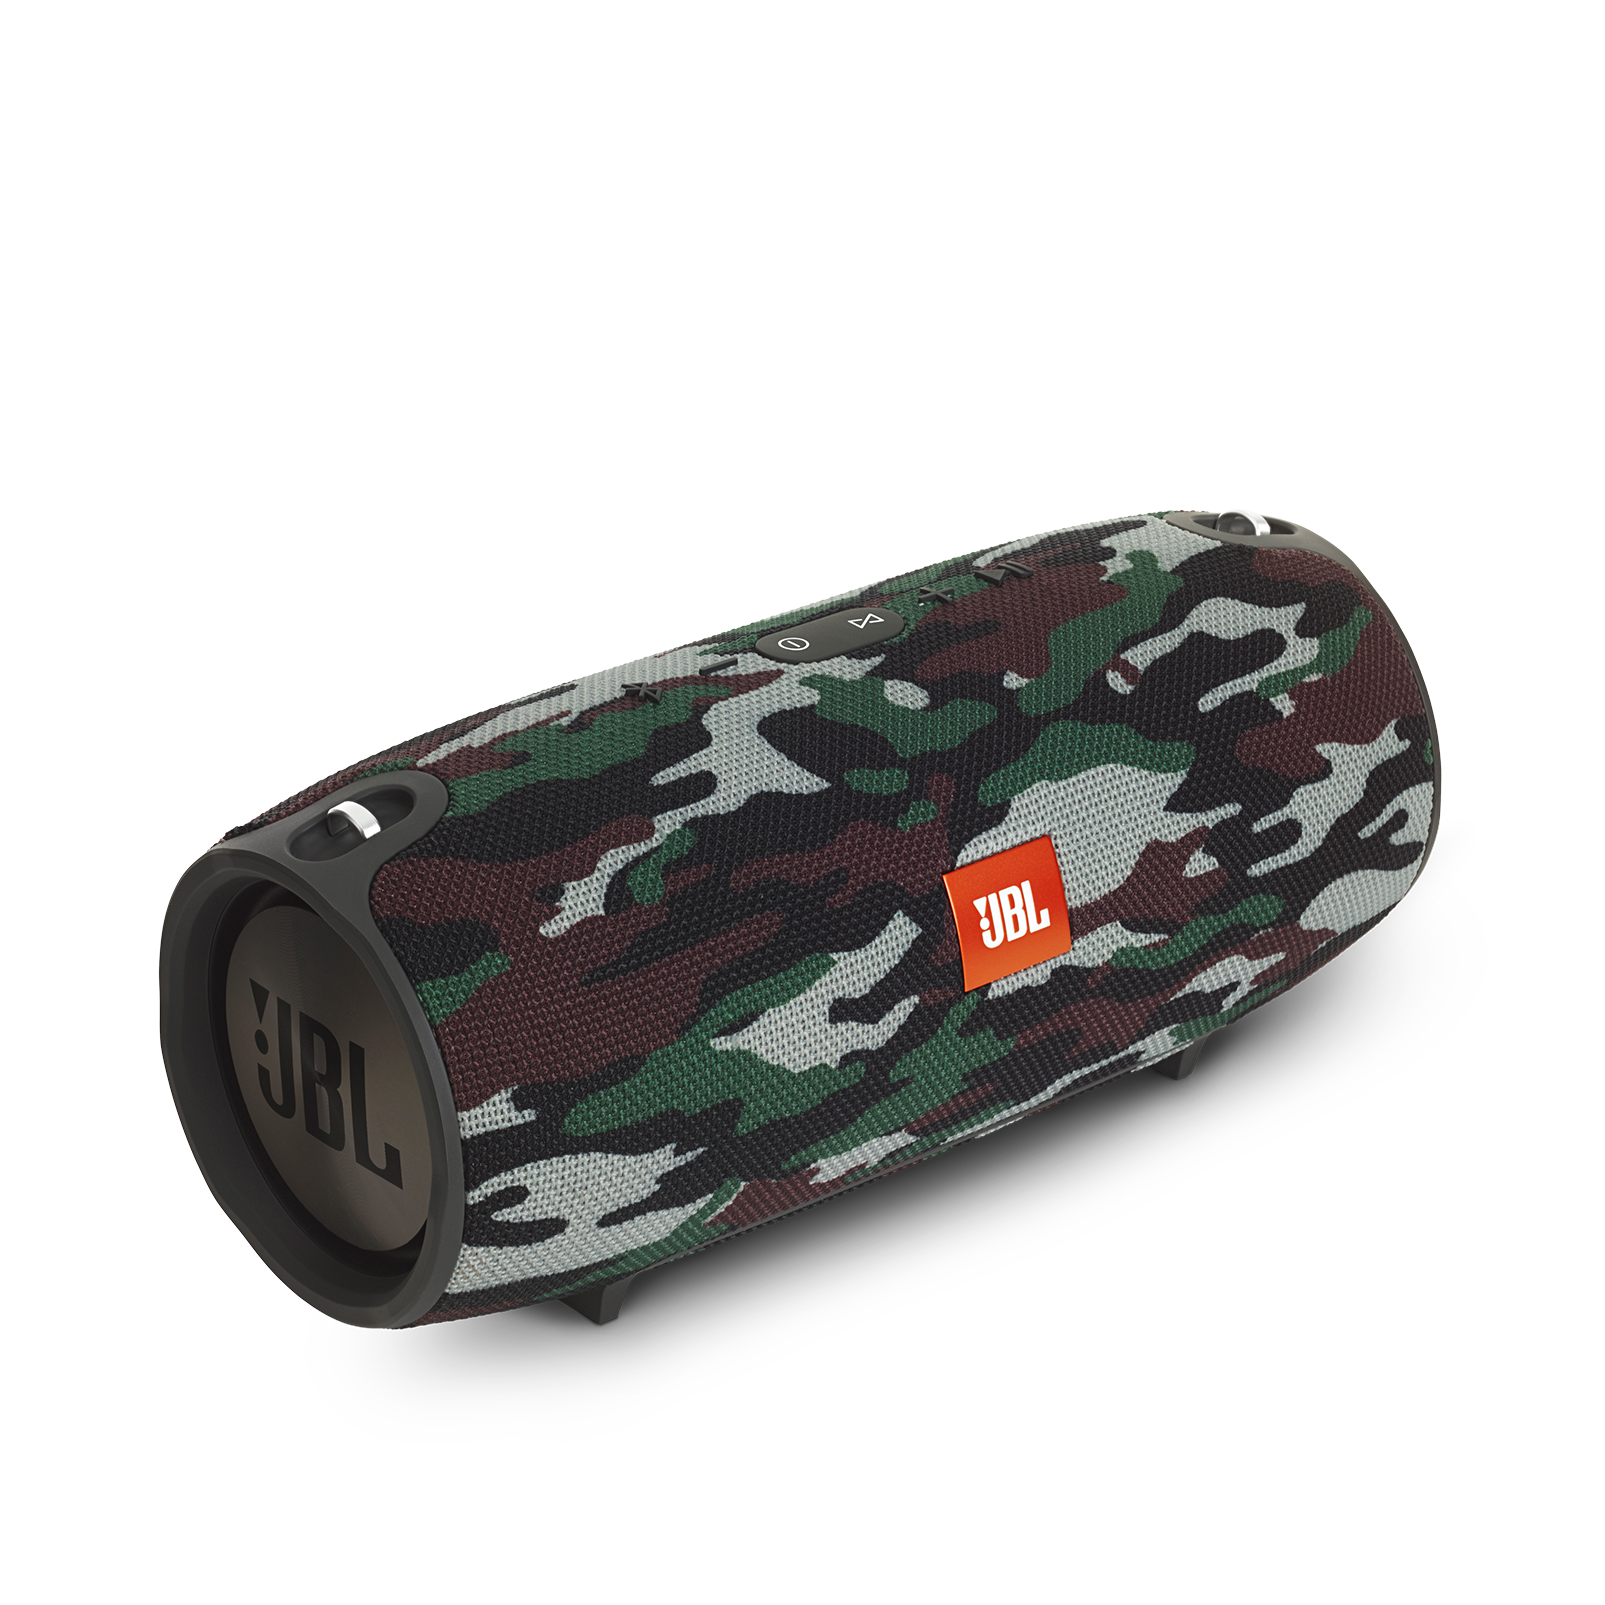 JBL Xtreme Special Edition - Squad - Splashproof portable speaker with ultra-powerful performance - Hero